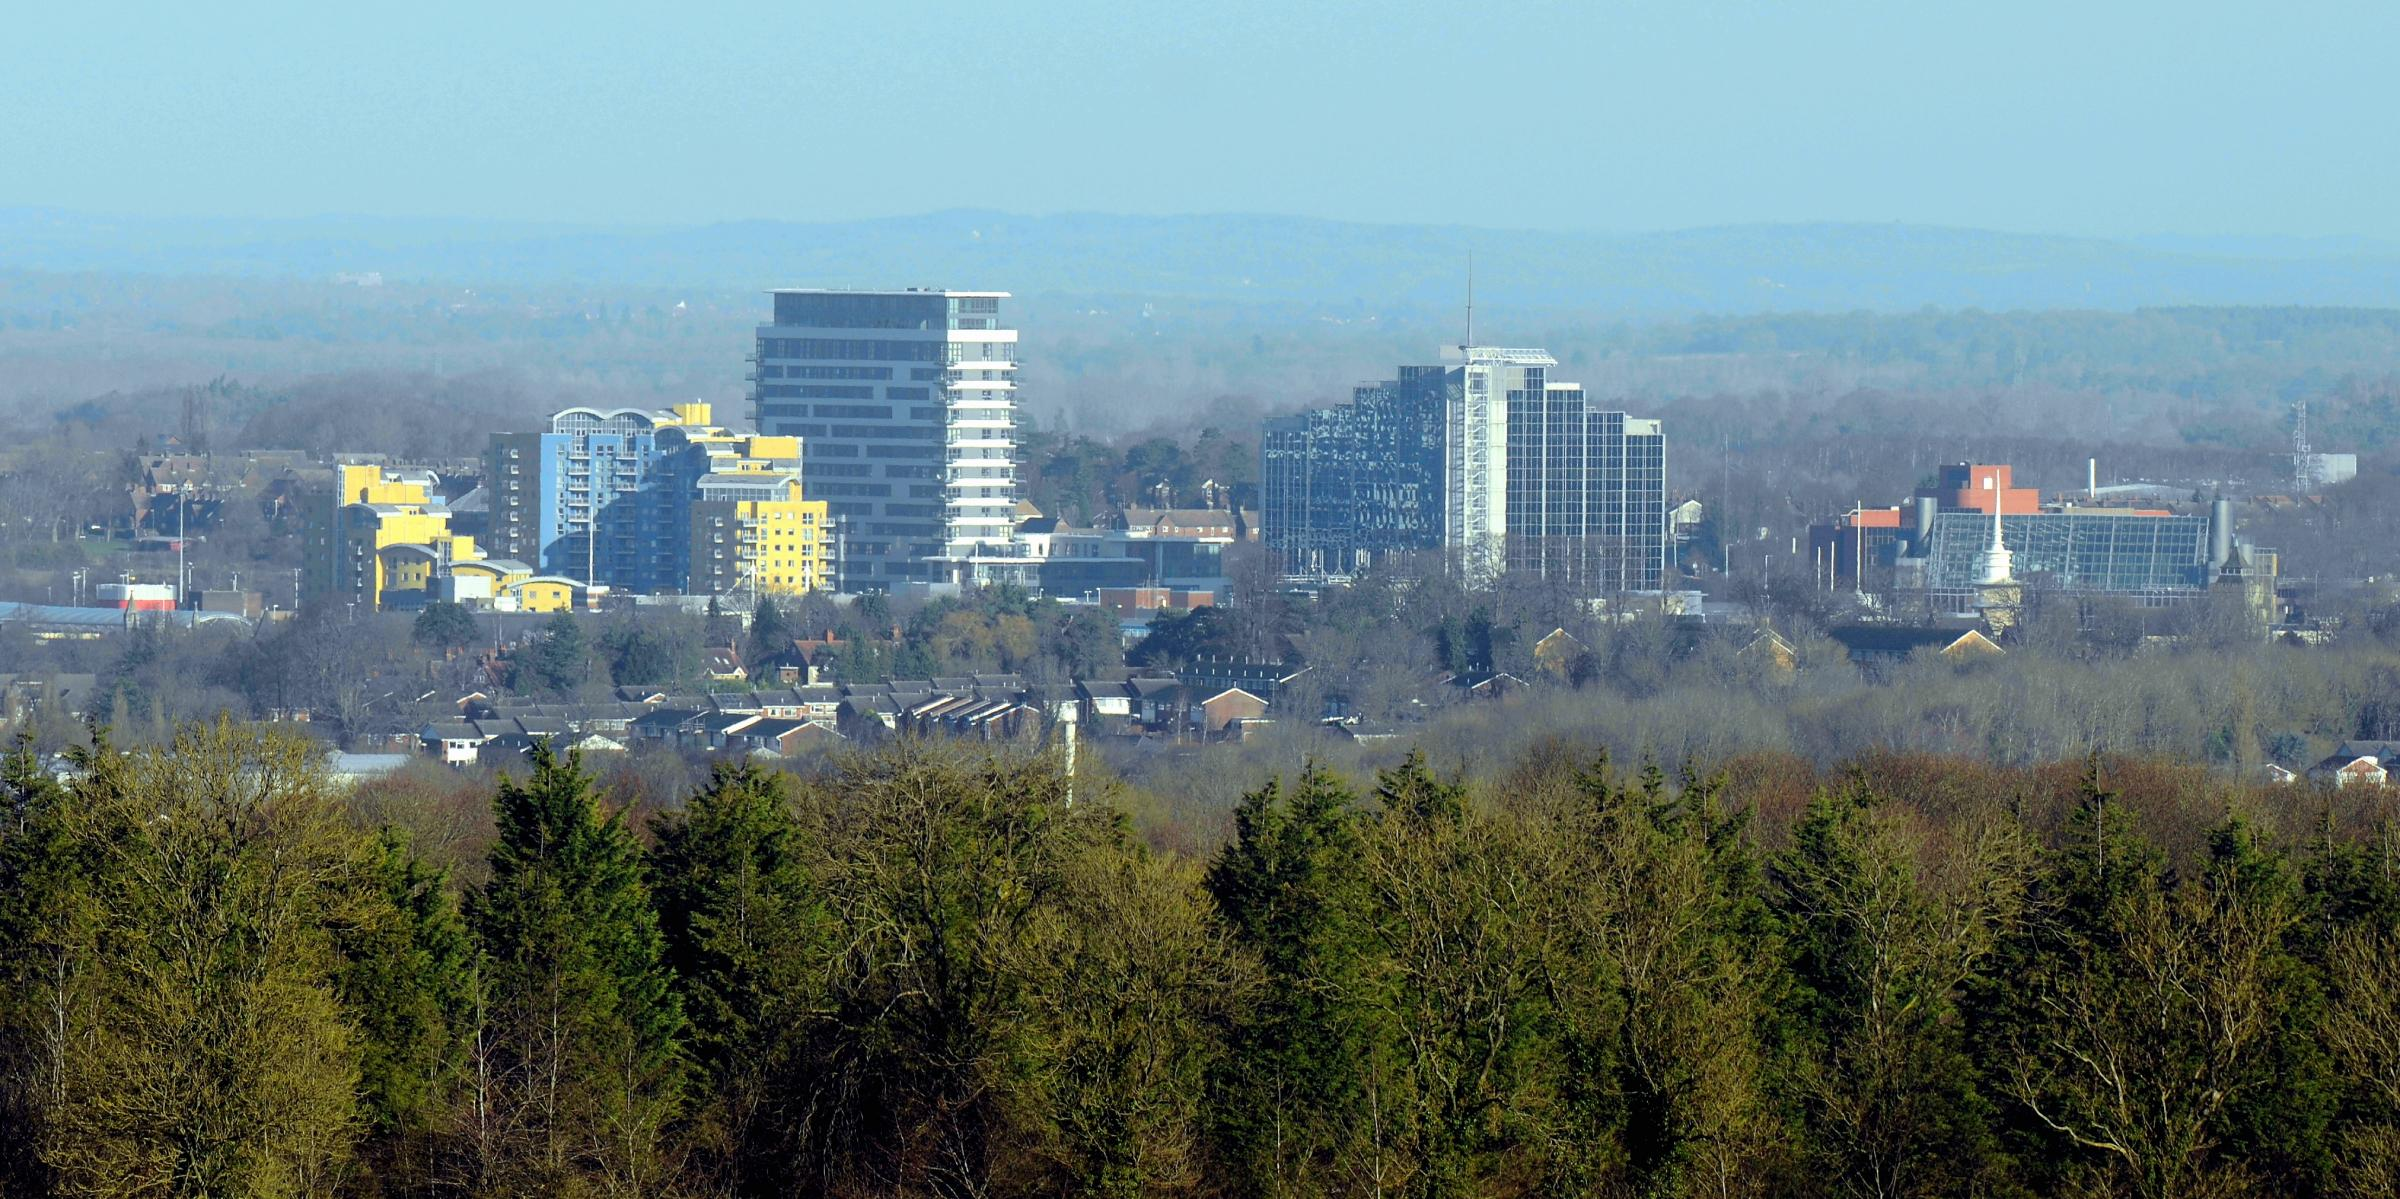 Basingstoke voted sixth least romantic destination in the UK